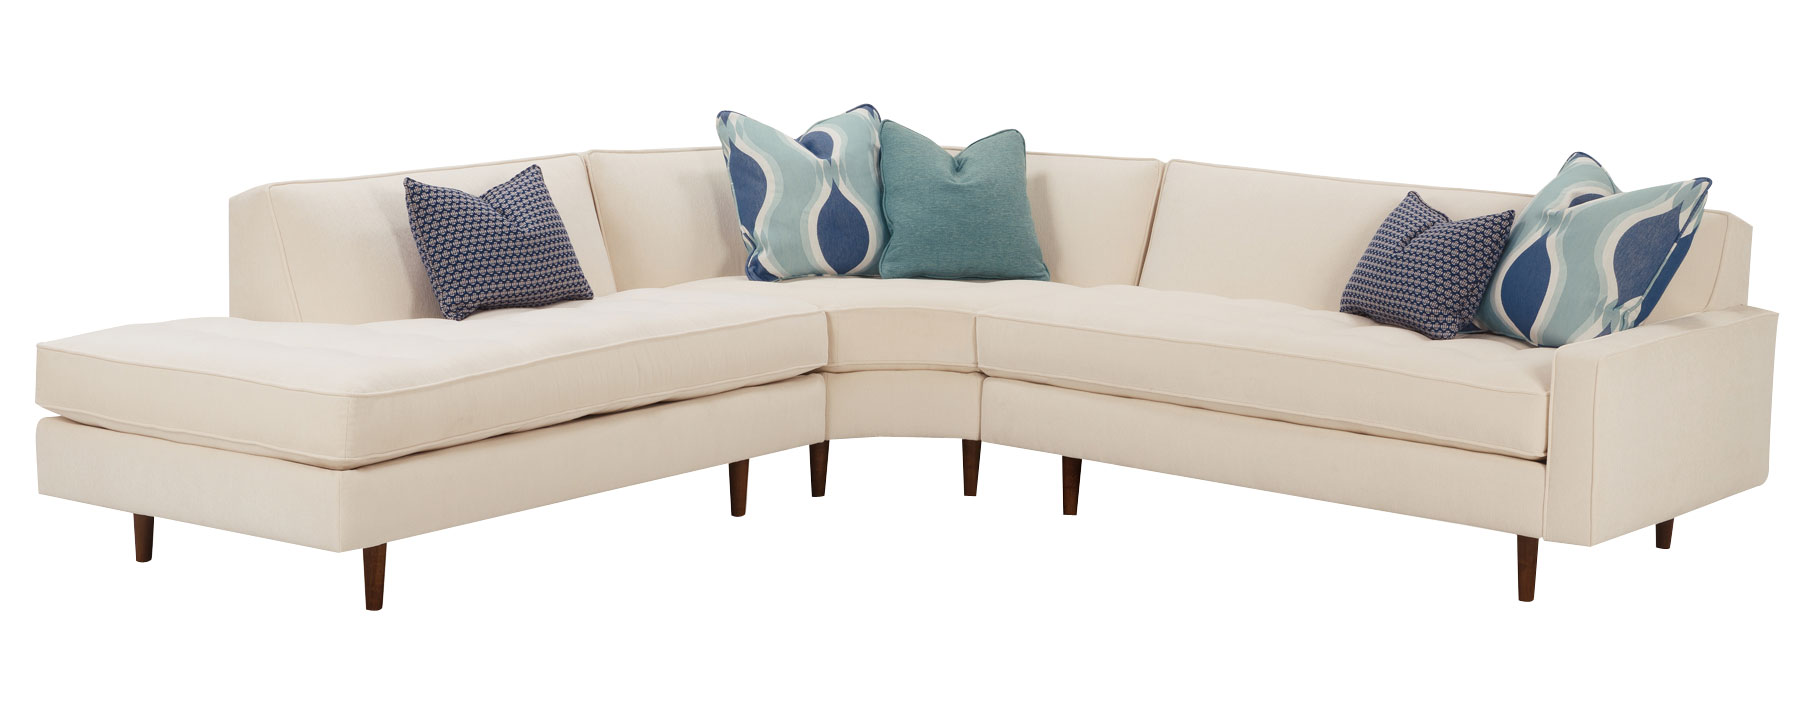 ^ Zoey Mid-entury Modern Sectional - Fabric Sectional Sofas